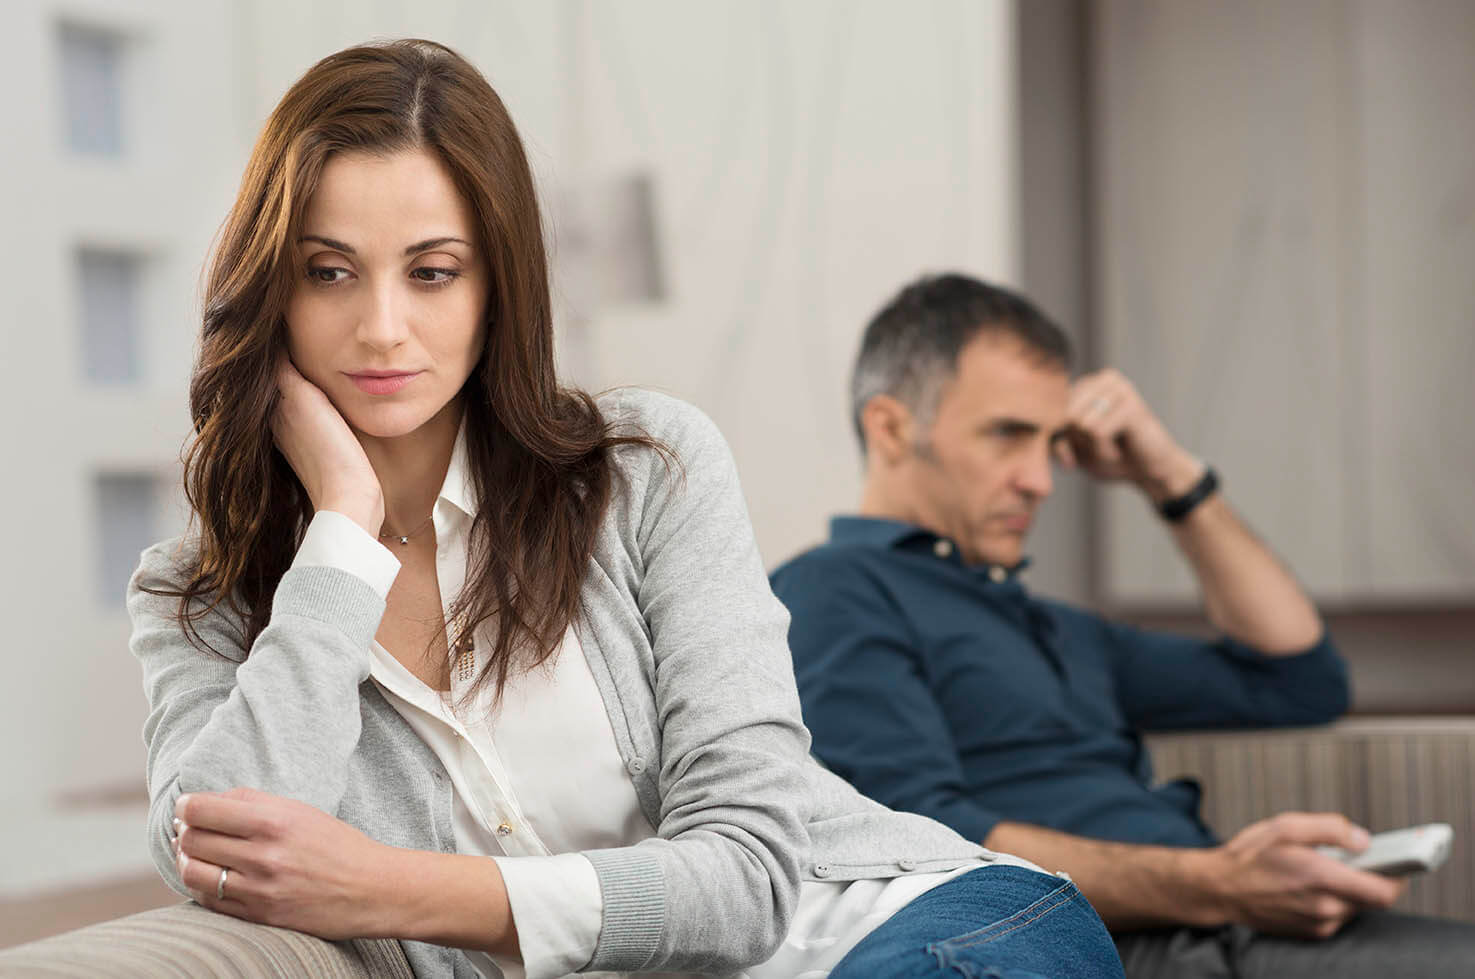 Financial Abuse More Prevalent, Less Obvious